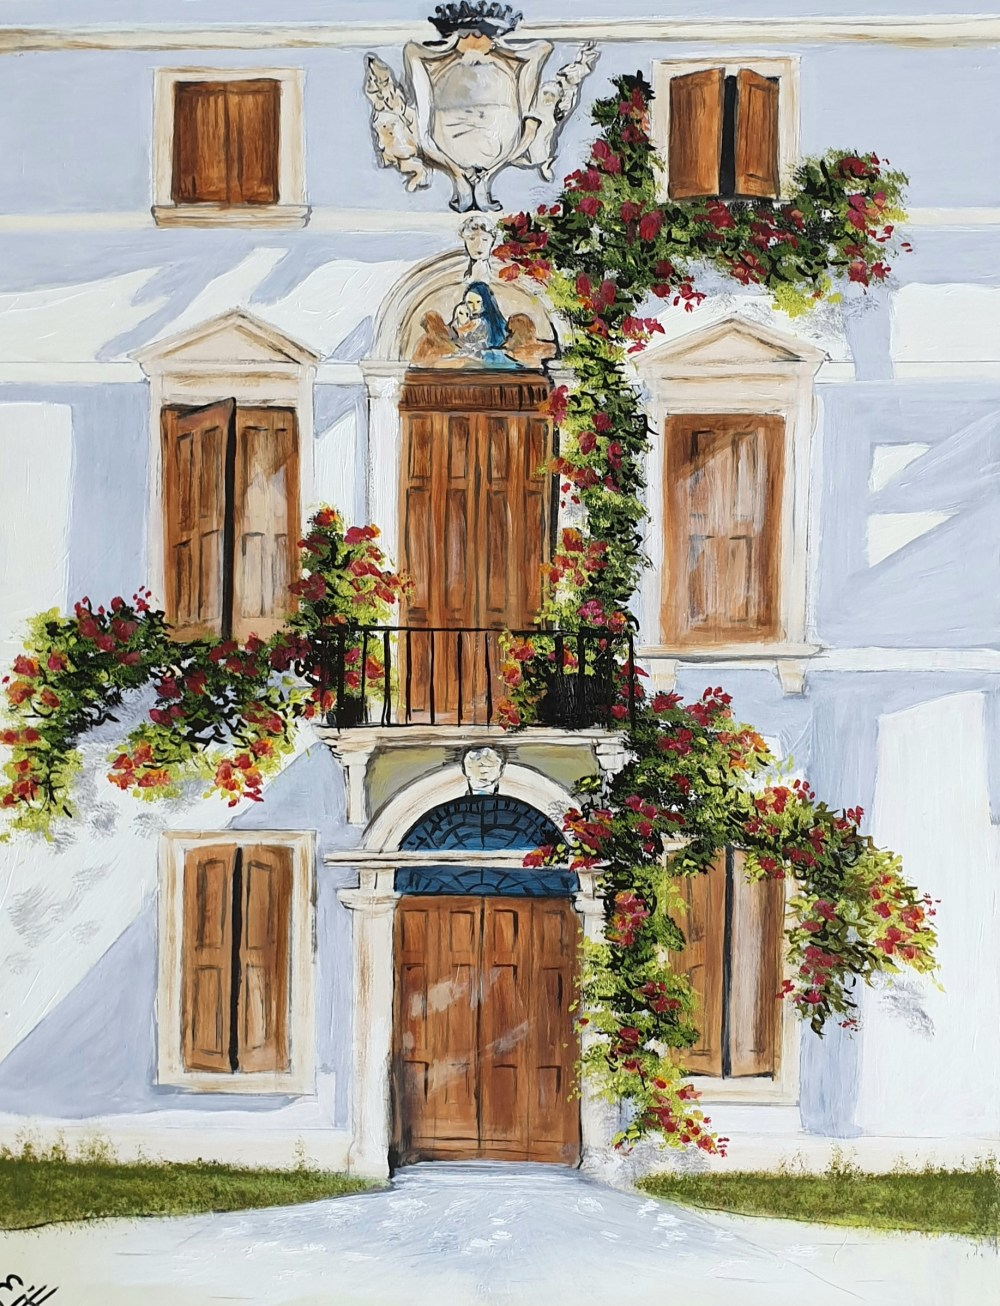 """A grand house in Scala on the Amalfi Coast in Italy, with rambling flowers adorning it's façade. This is a 9x12"""" (A4) premium quality giclée art print from an original oil painting by UK artist Ellisa Hague. Other pieces in this series are available, please visit www.EllisaHagueOriginal.com or visit the Etsy Shop to view them."""